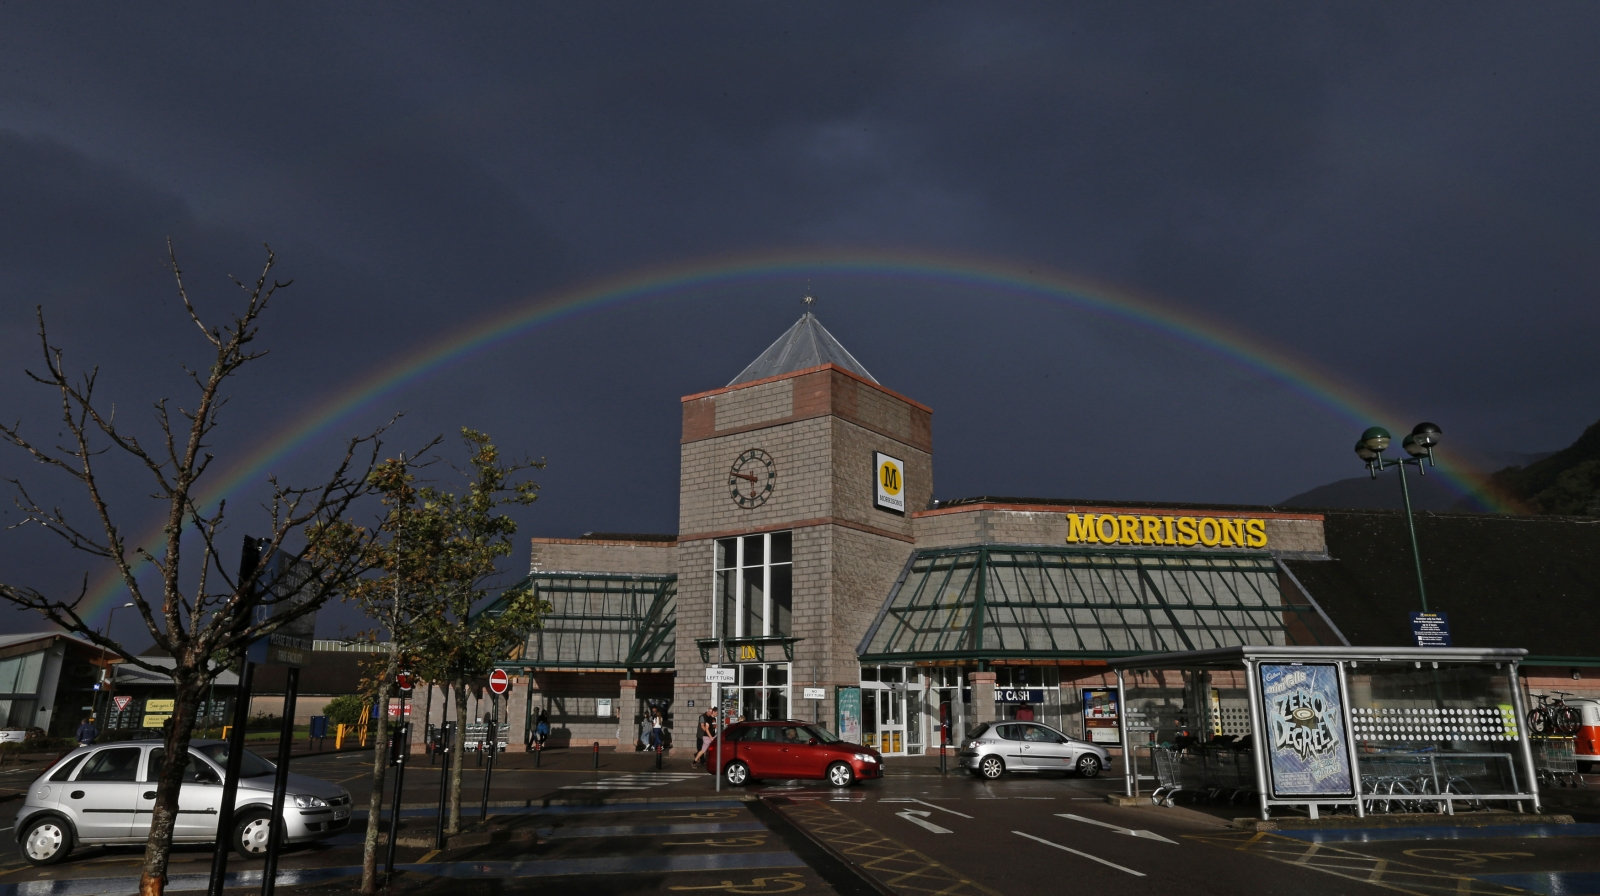 A rainbow is seen over Morrisons supermarket in Fort William, Scotland August 31, 2014